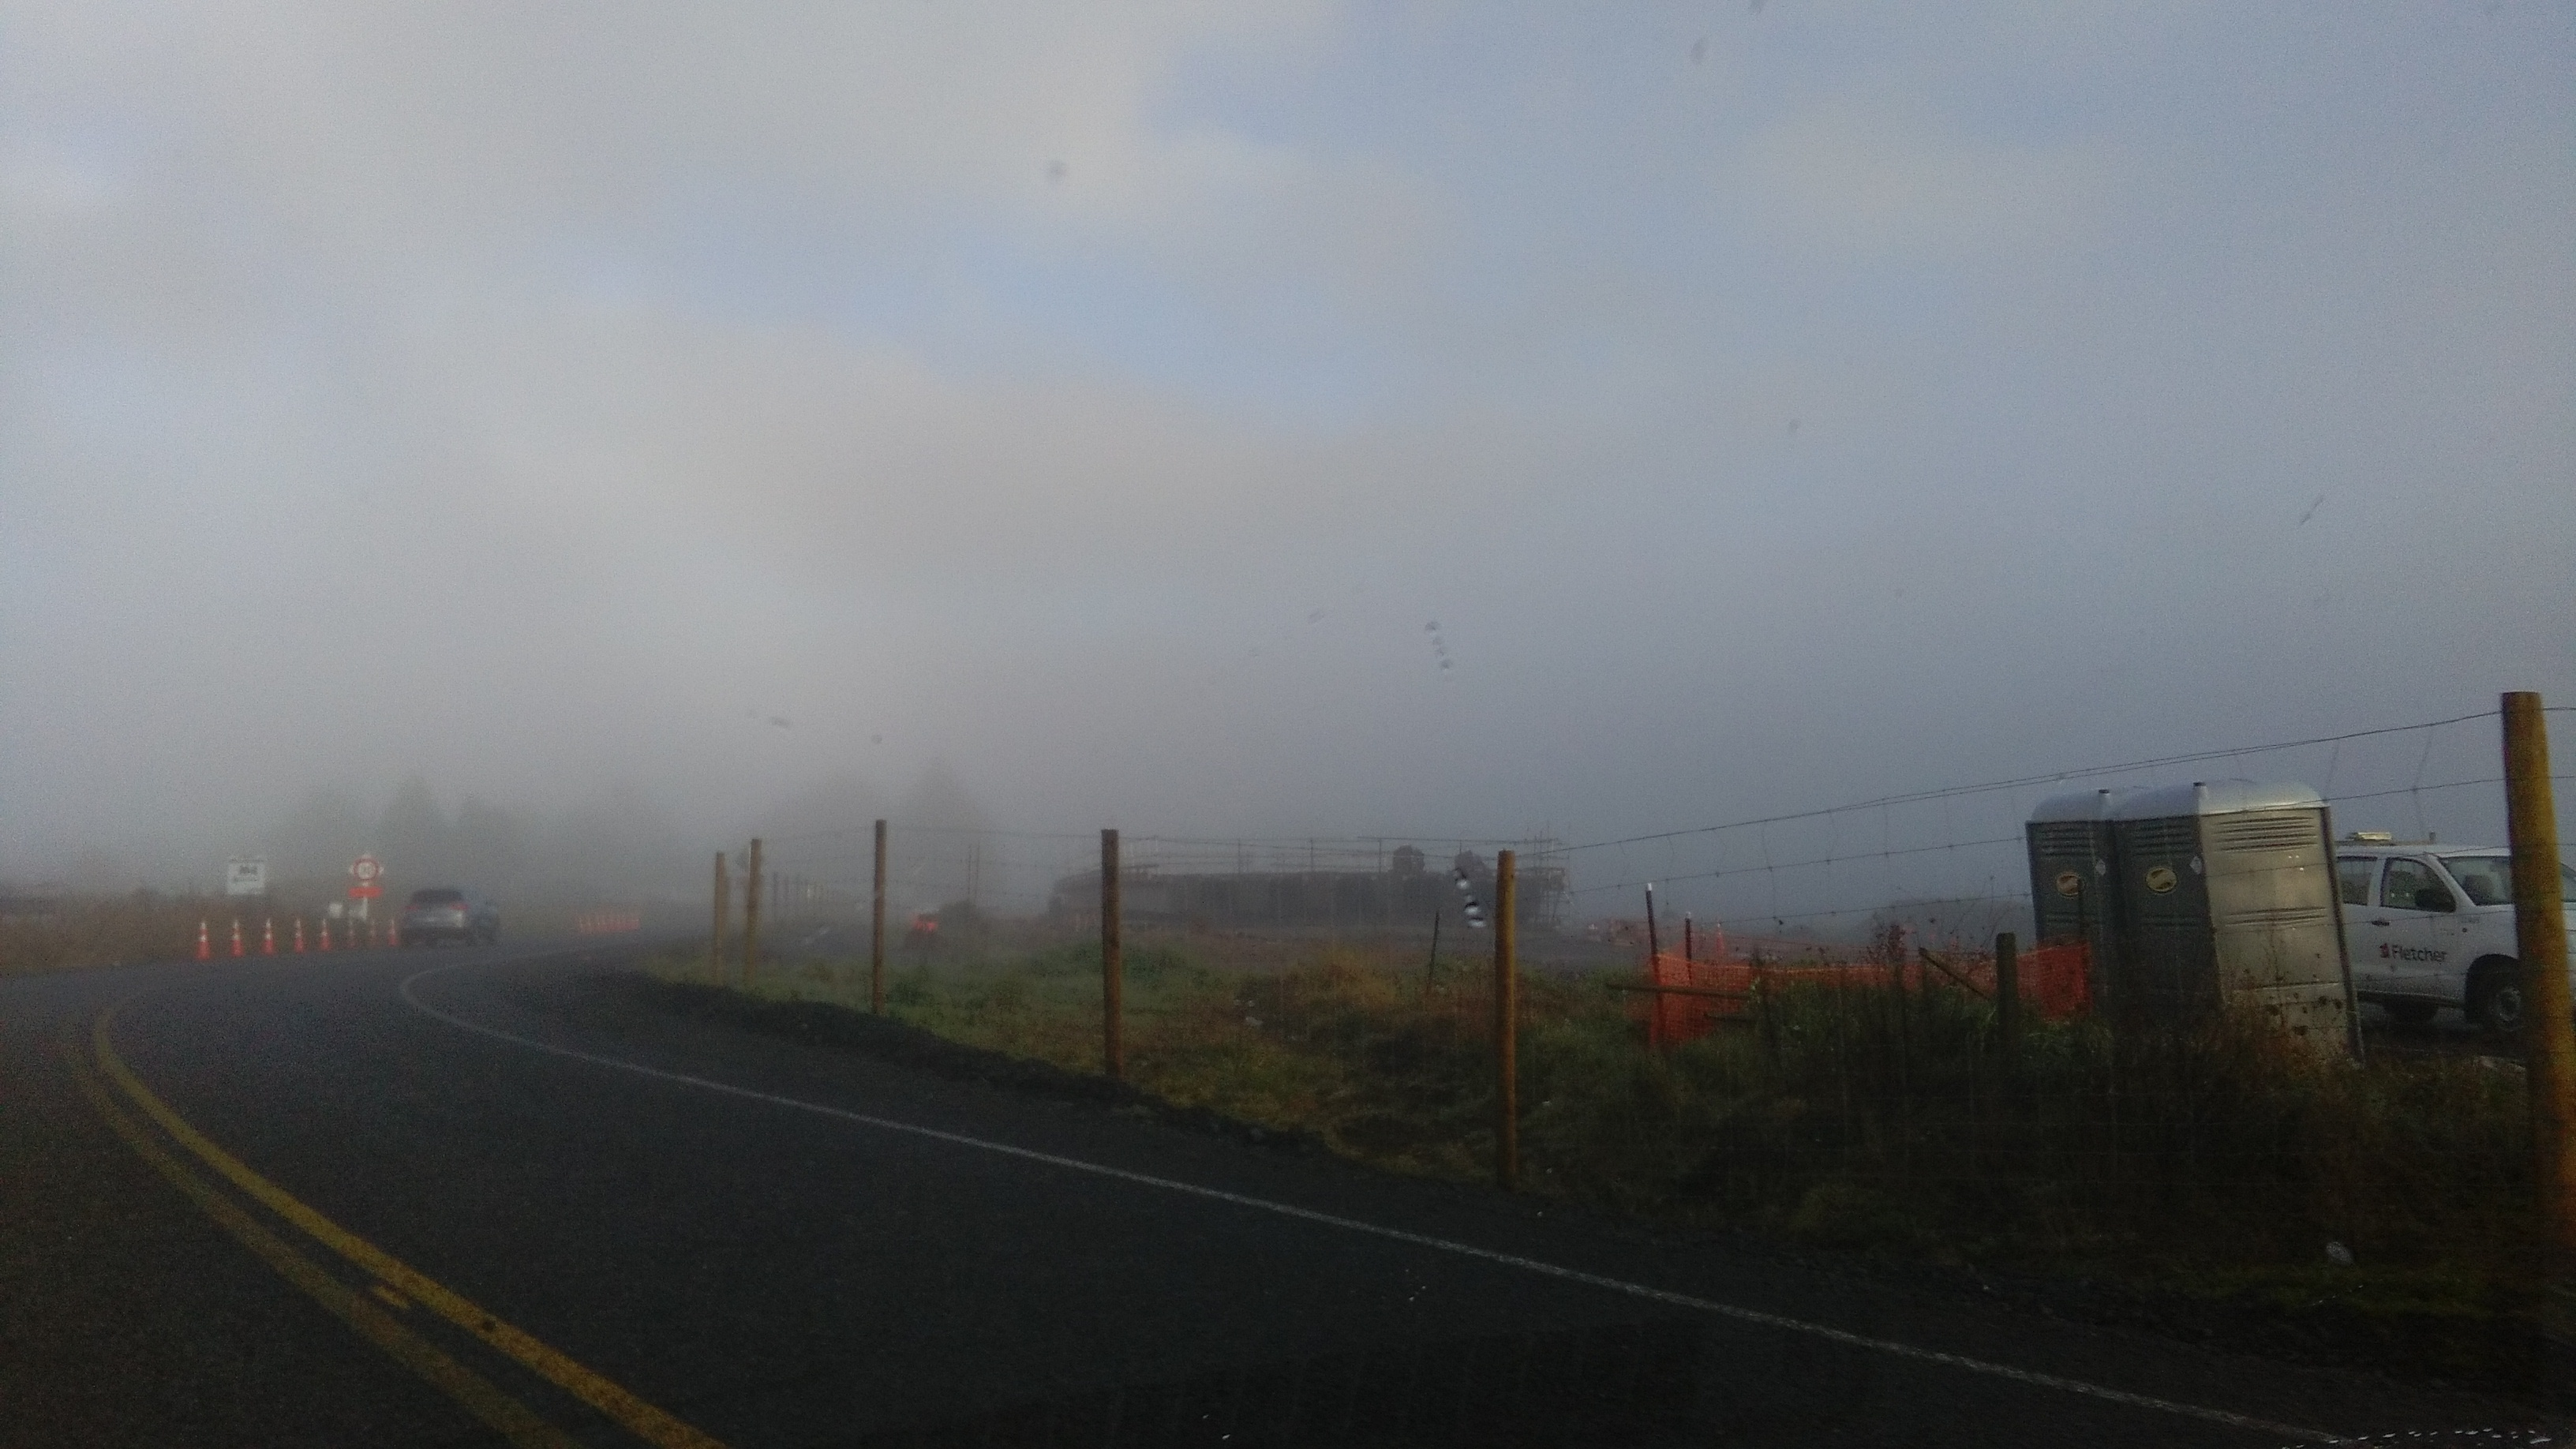 Bridge expressway matangi road in the fog